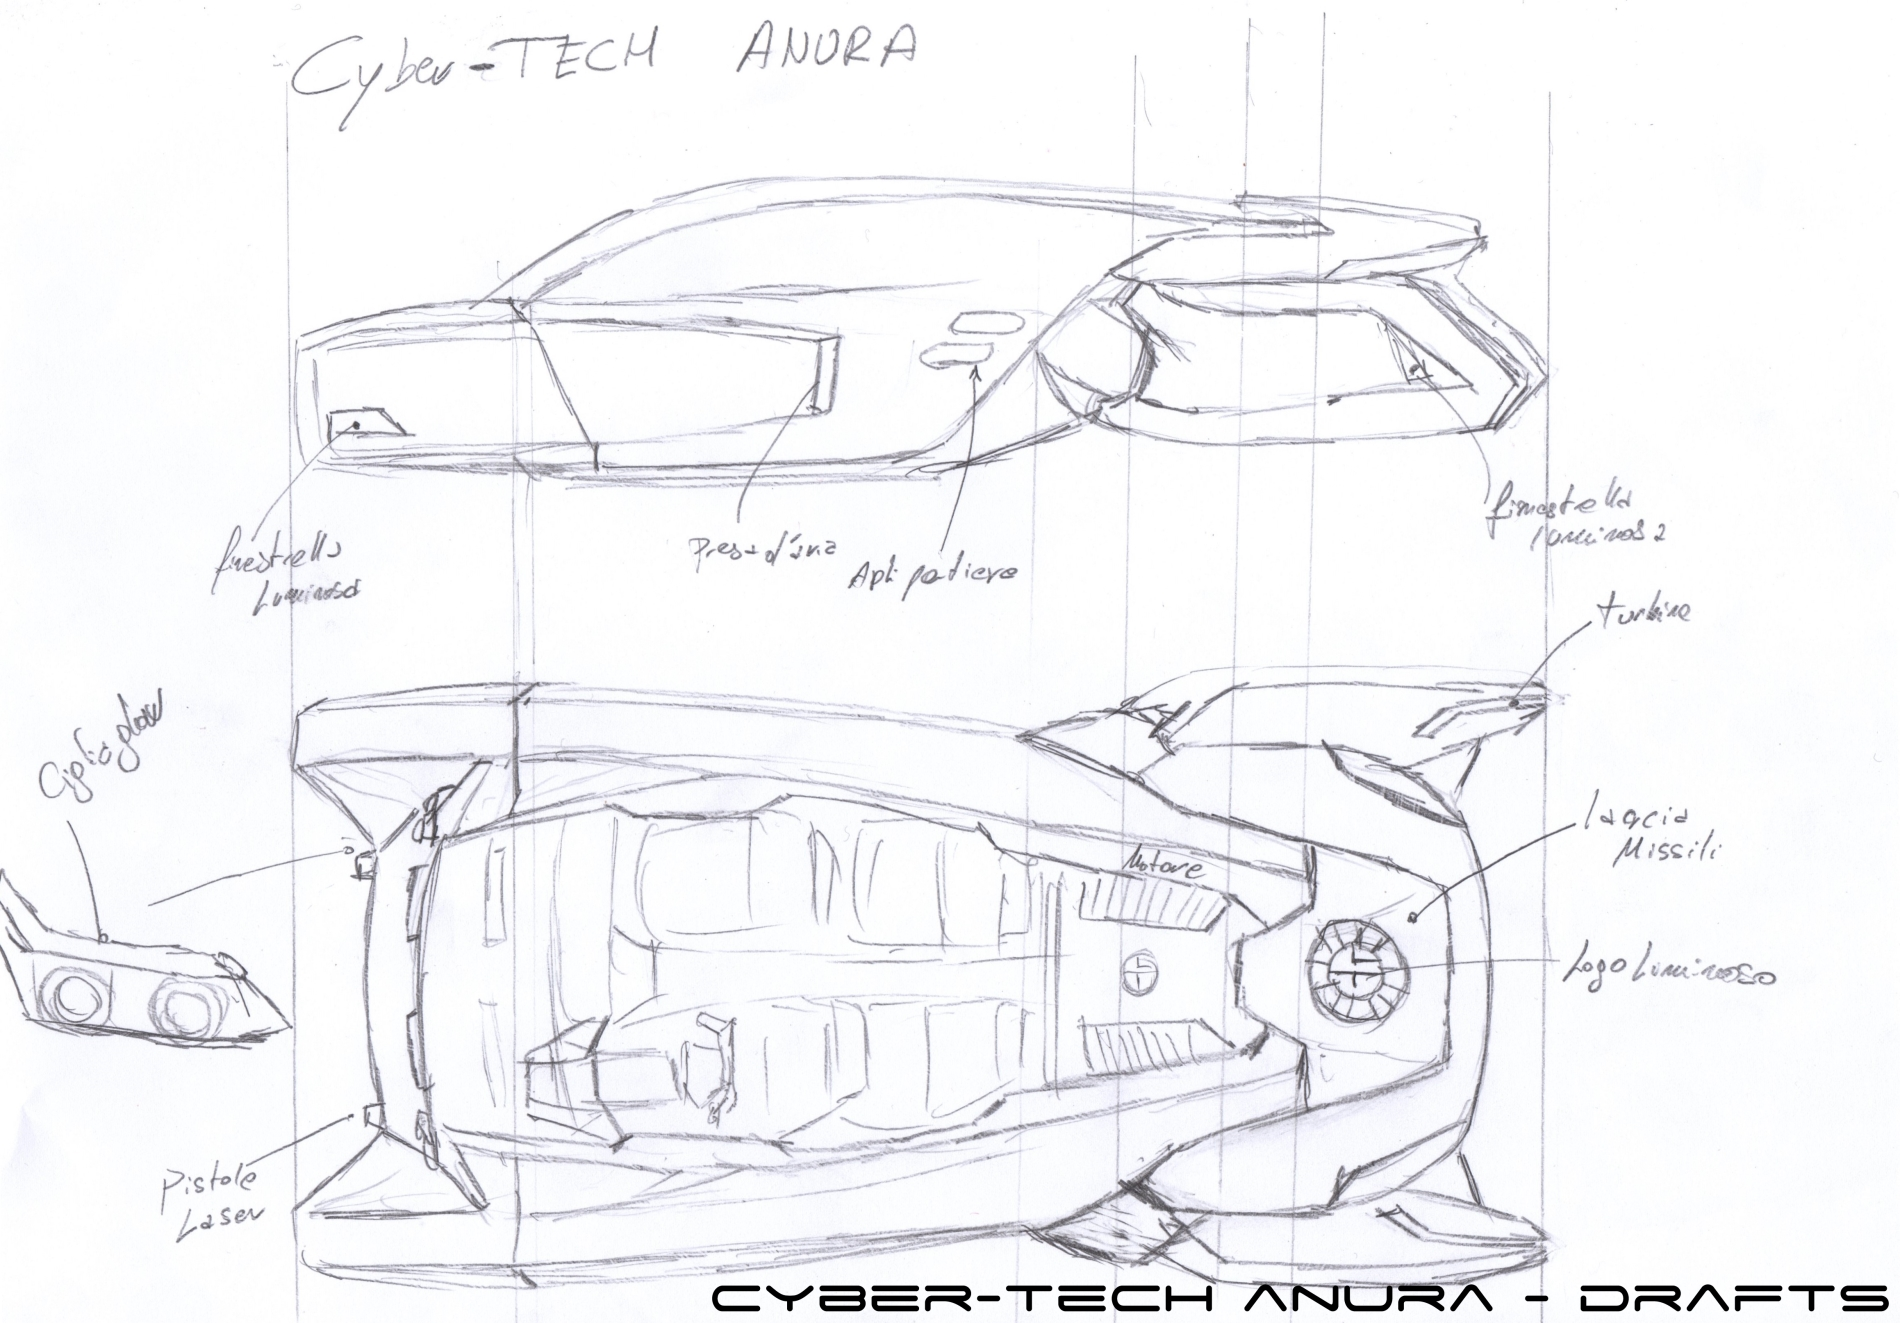 2013 Hyundai Genesis Coupe Body Parts Diagram. Hyundai